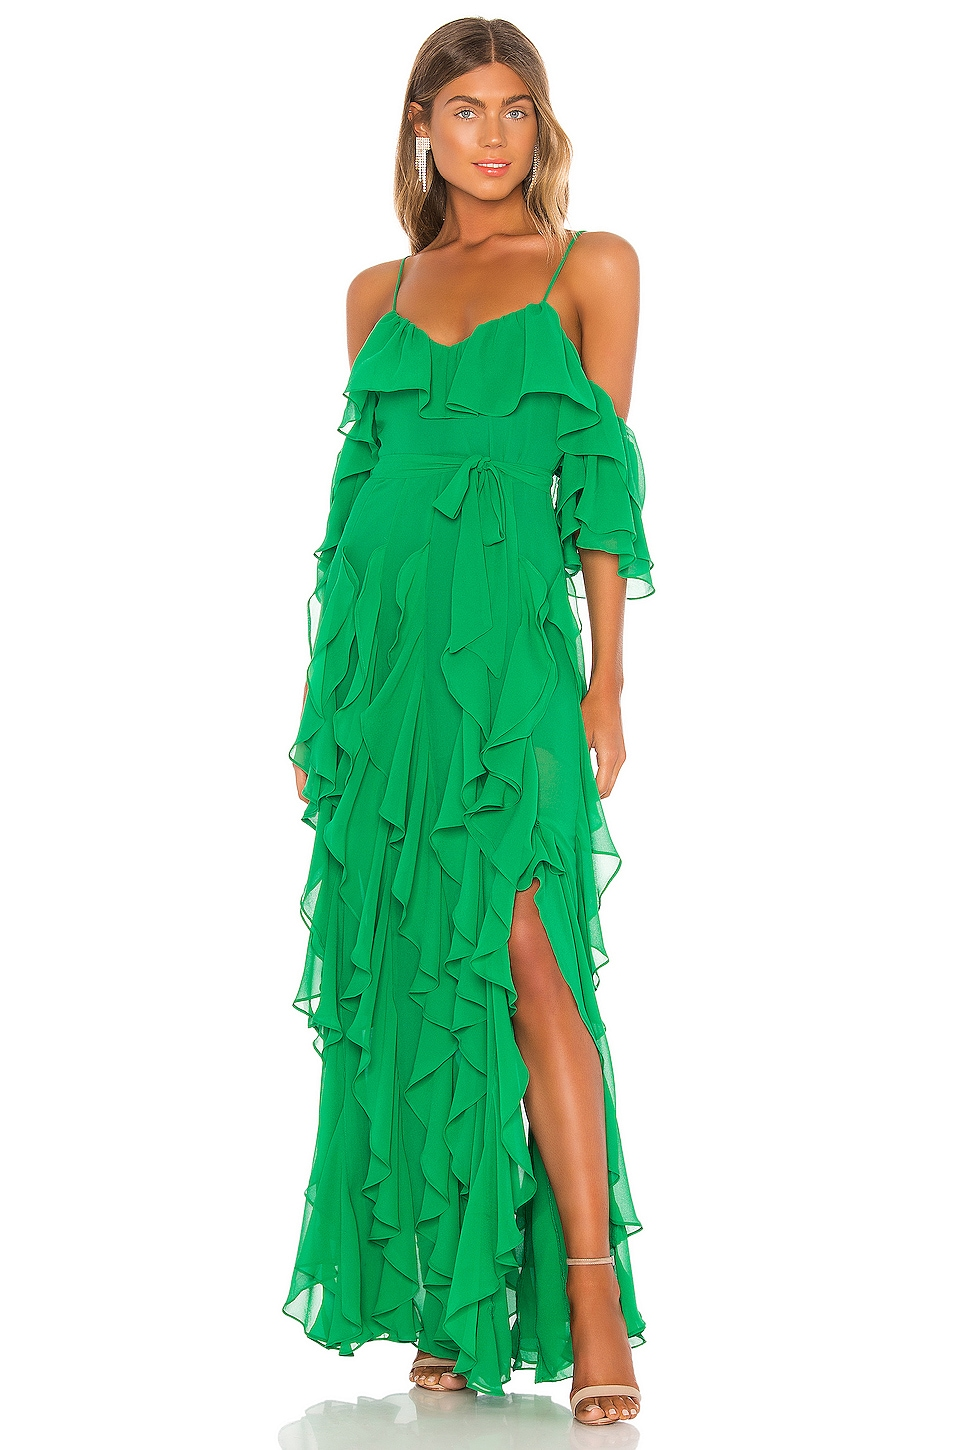 MAJORELLE Tasmania Gown in Bright Green